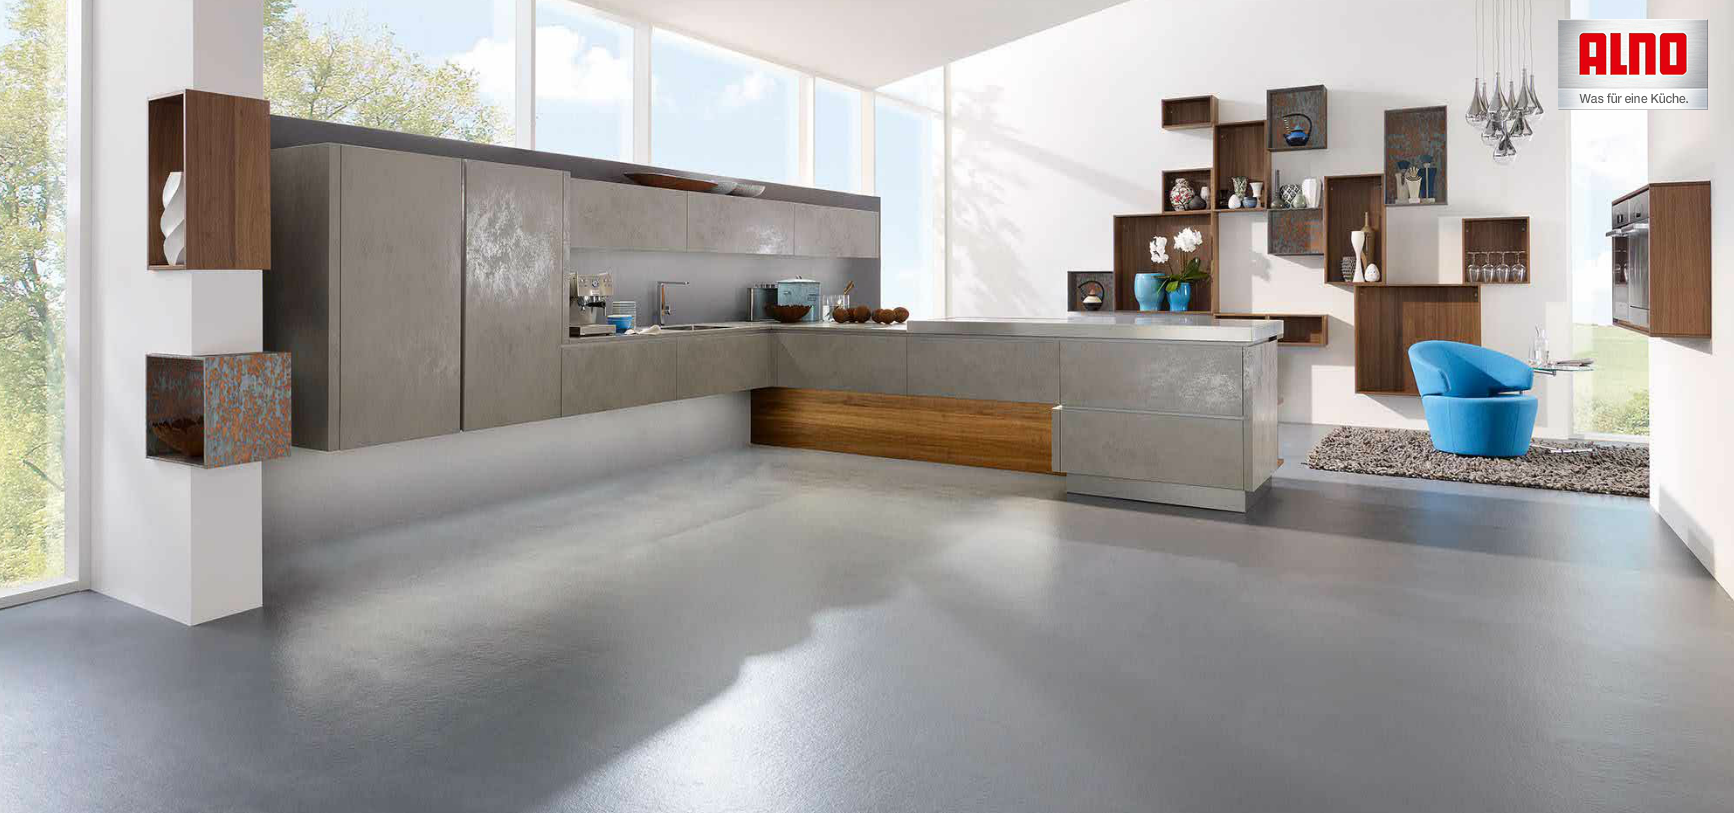 Cool Nolte Manhattan kitchens are a showpiece and this design would grace any modern home Kitchen inspiration Pinterest Manhattan Kitchens and Modern